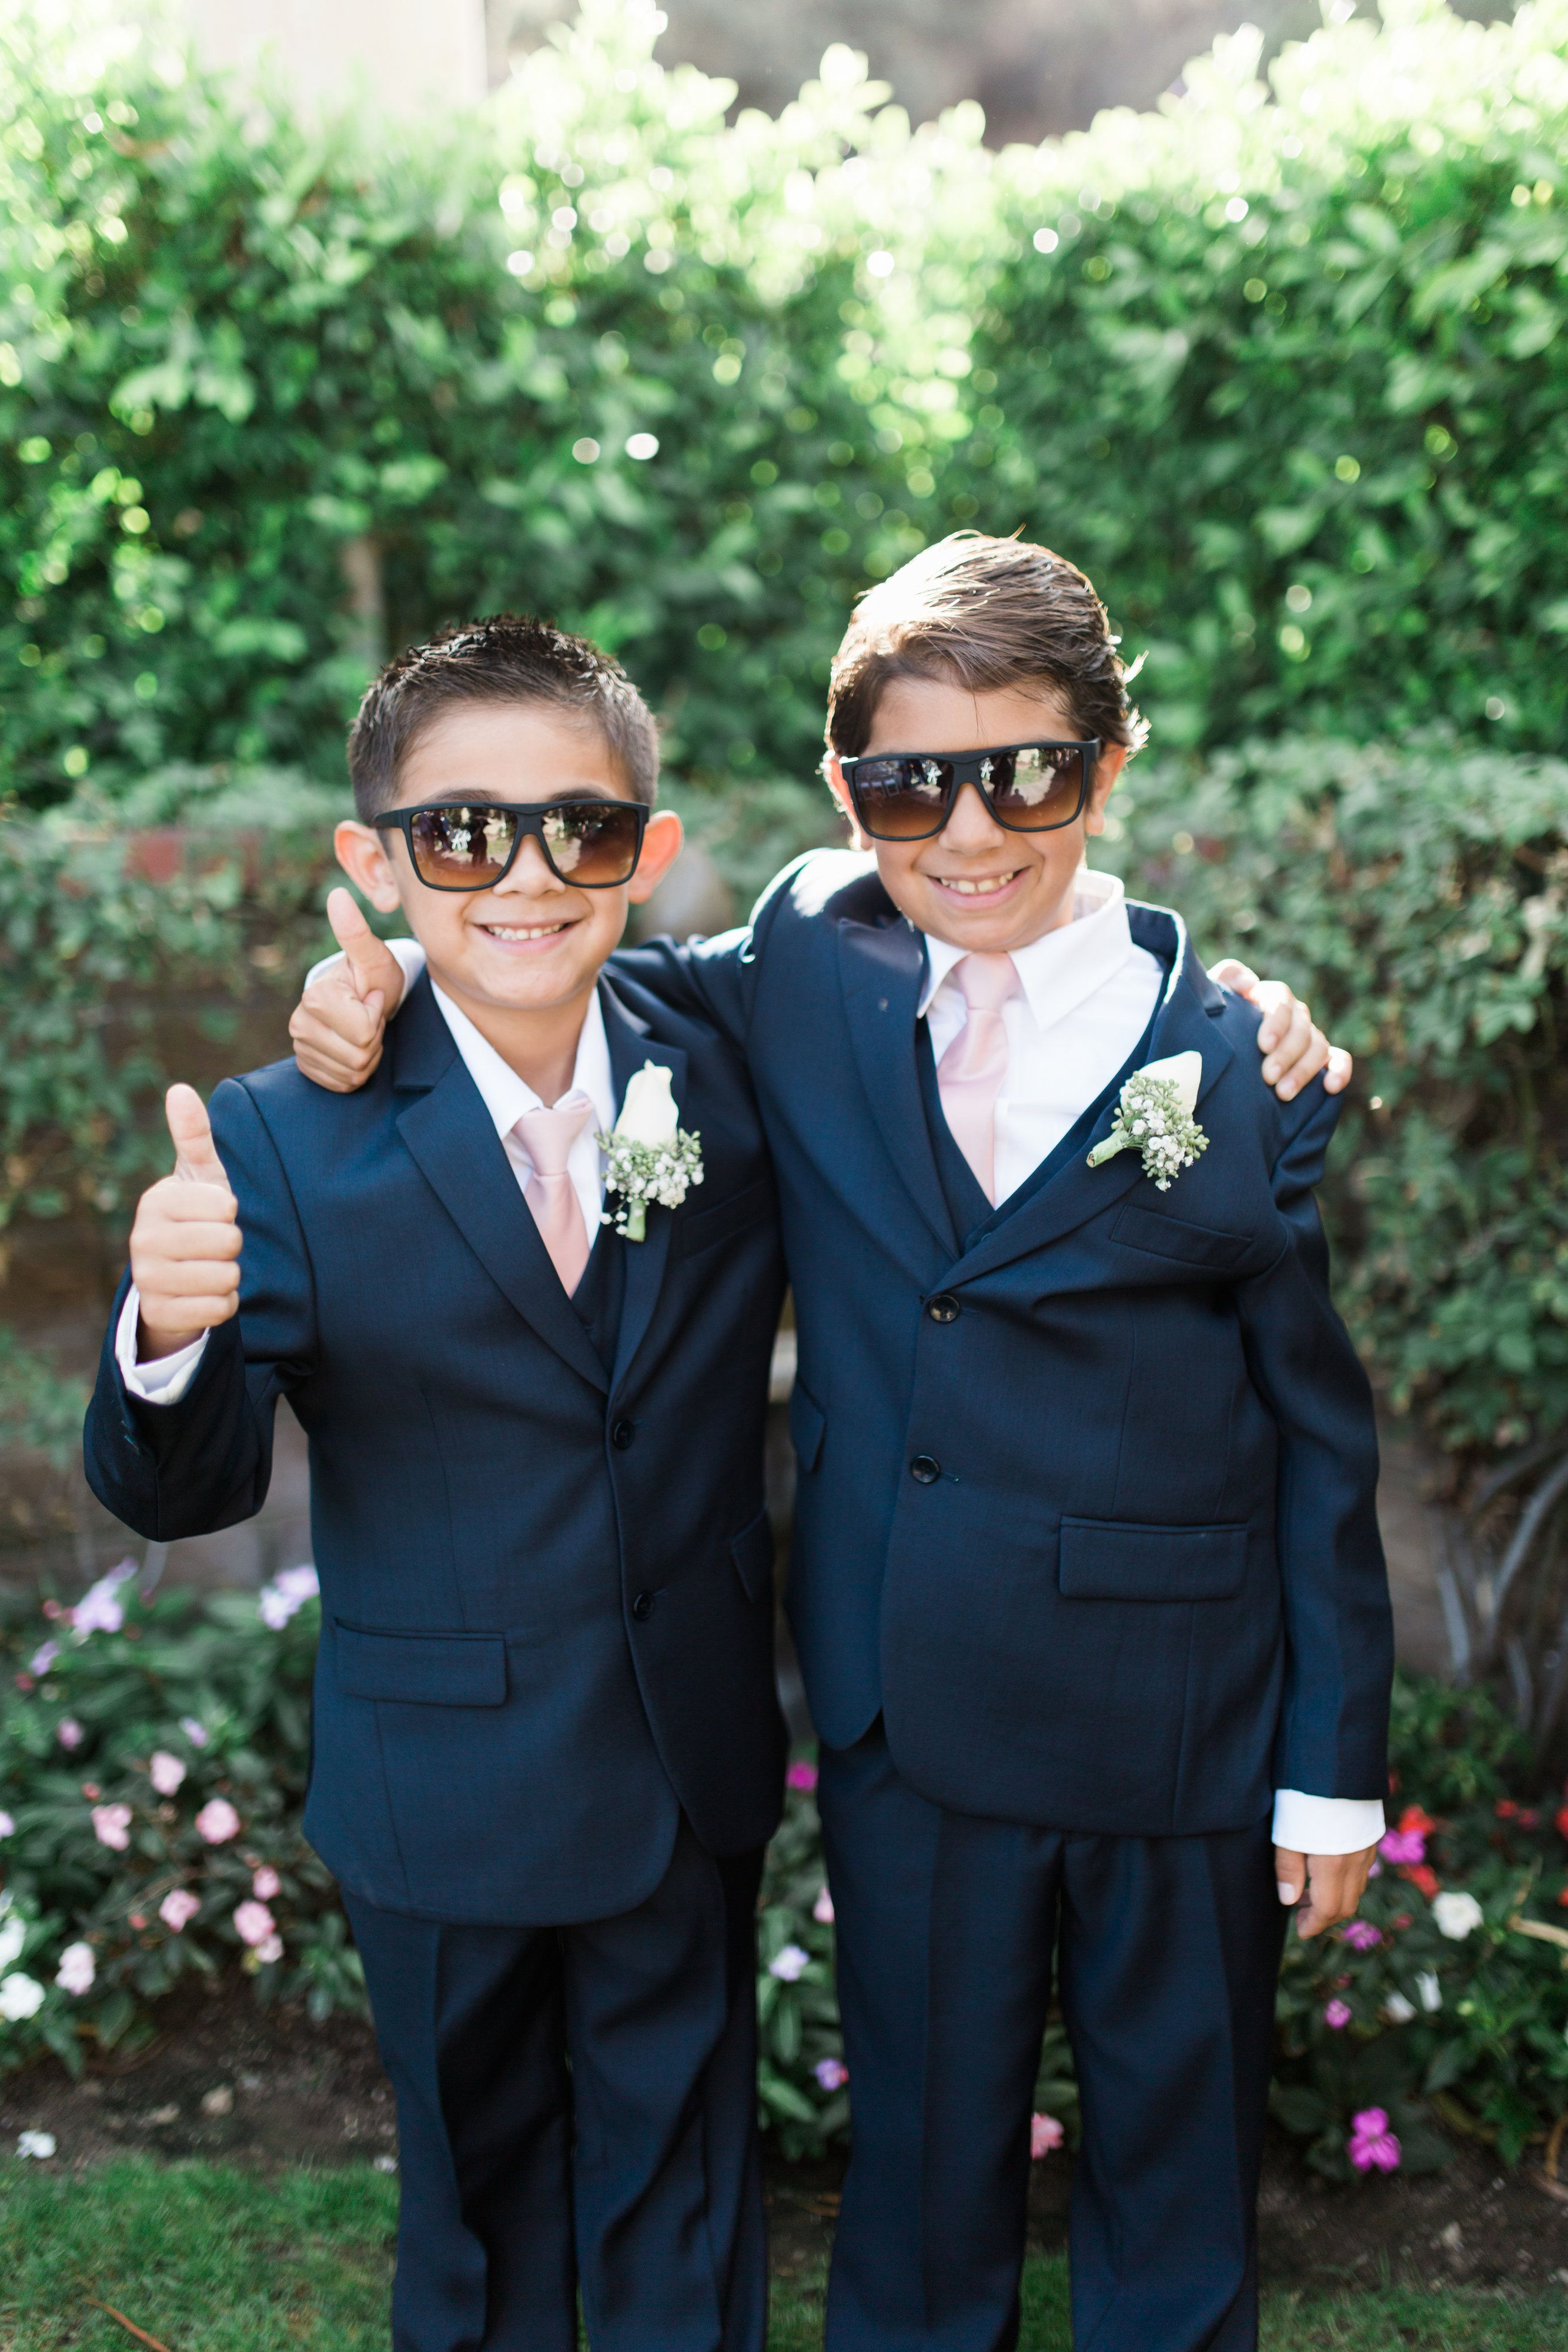 Cutest Junior Groomsmen That You Ever Did See Junior Groomsmen Usher Wedding Attire Wedding Photography Styles